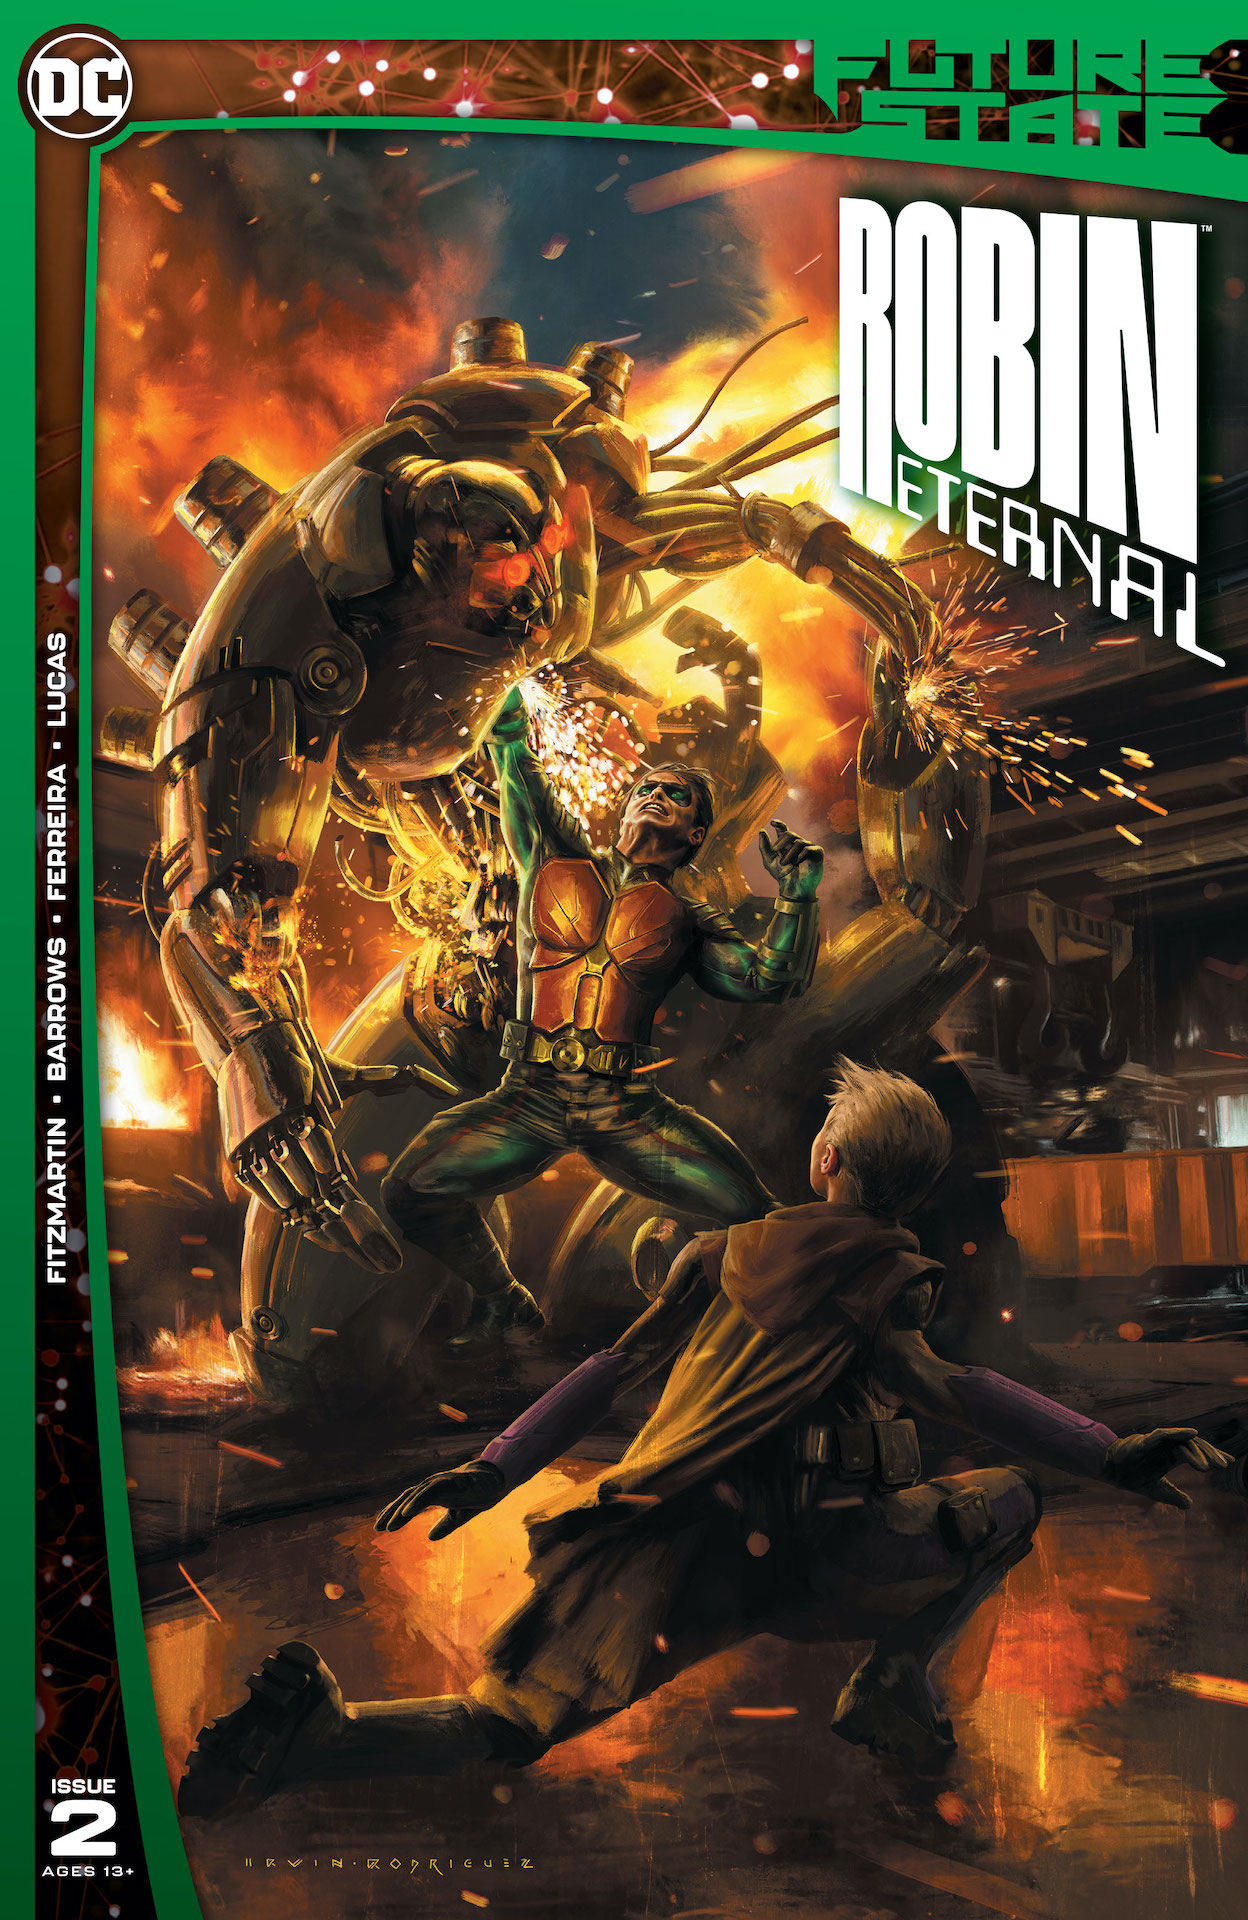 DC Preview: Future State #2: Robin Eternal